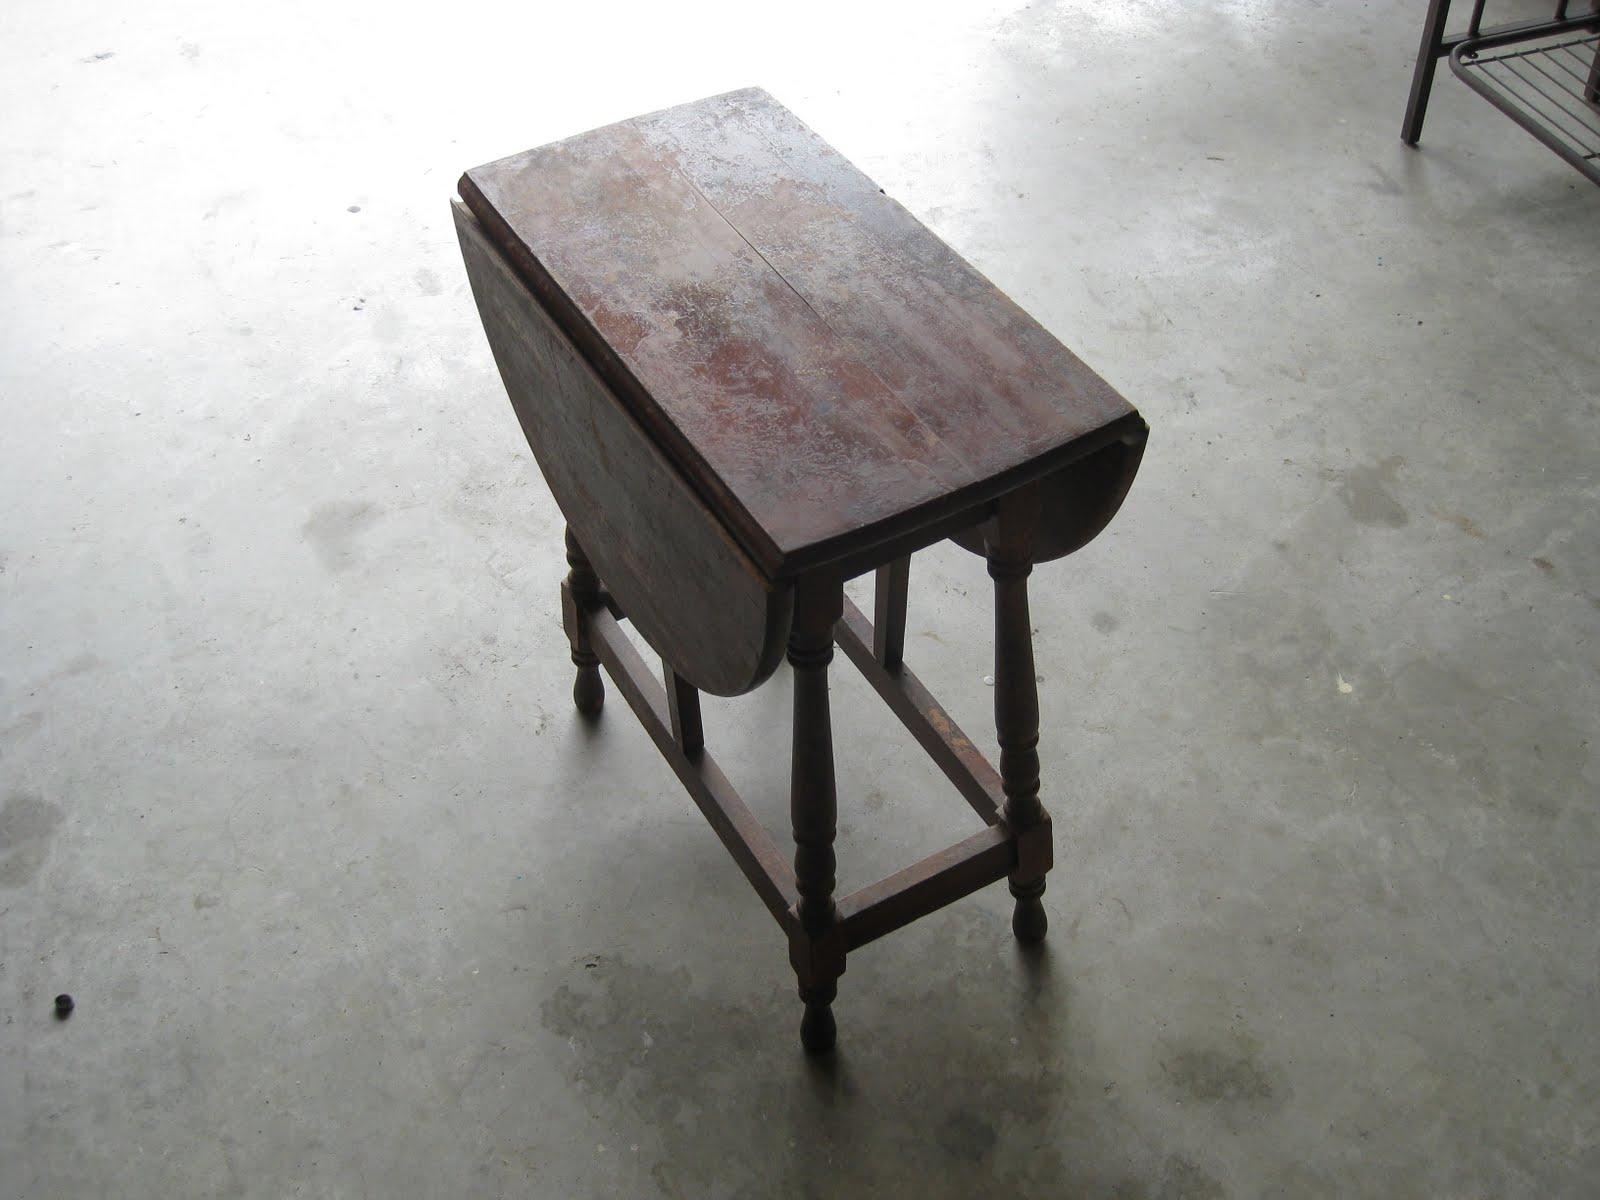 Remarkable Antique Fold Away Table 1600 x 1200 · 127 kB · jpeg